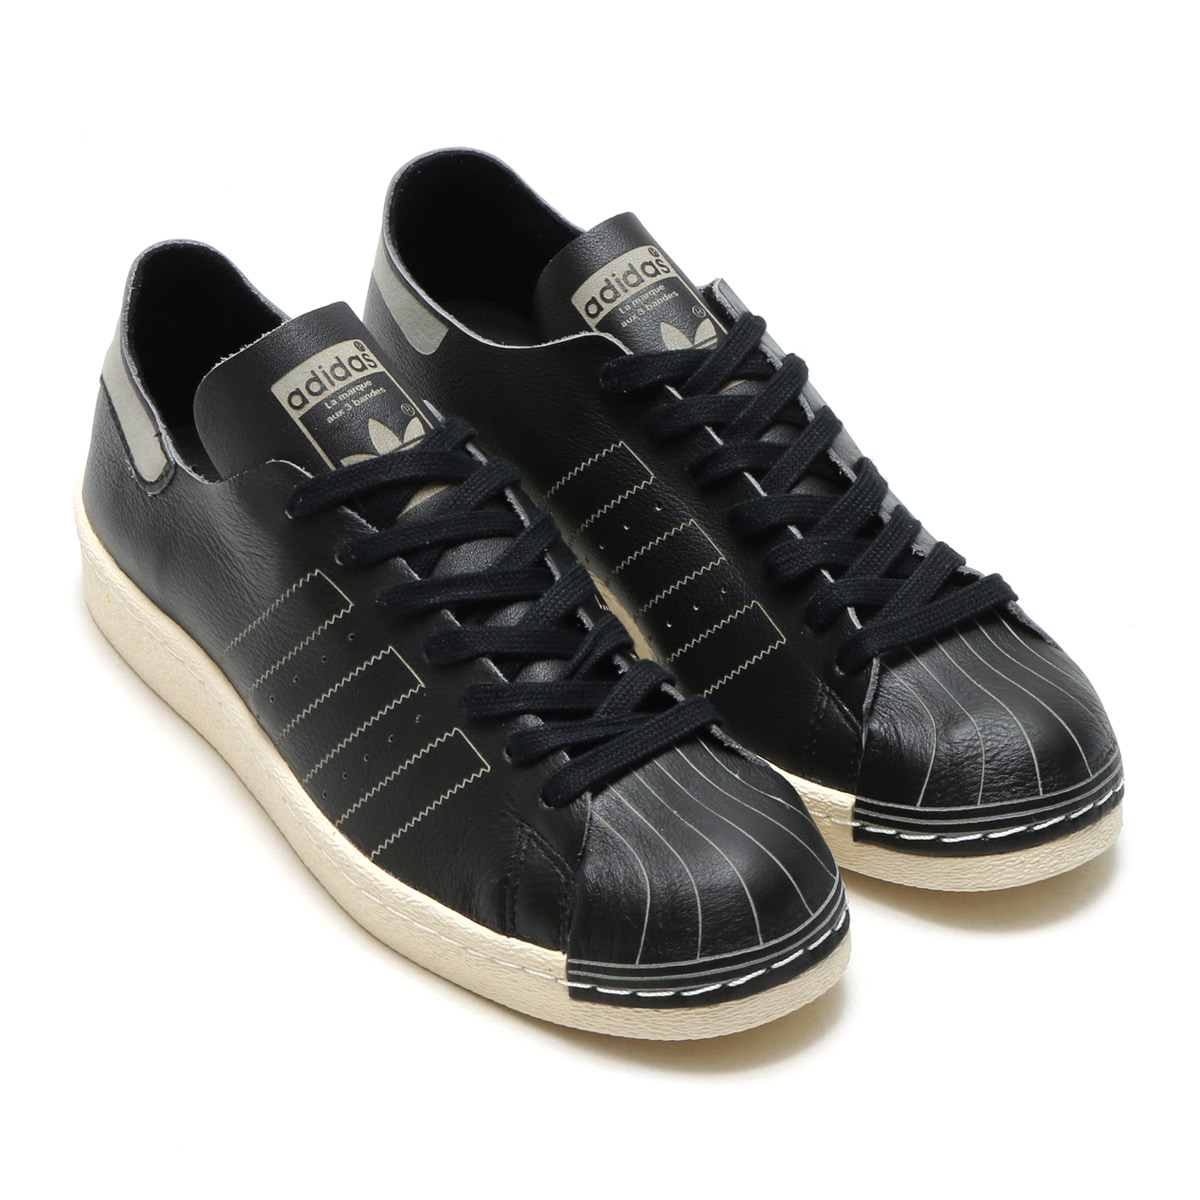 adidas Originals SUPERSTAR 80s DECON (Adidas originals superstar) (CORE BLACKCORE BLACKVINTAGE WHITE) 17FW S